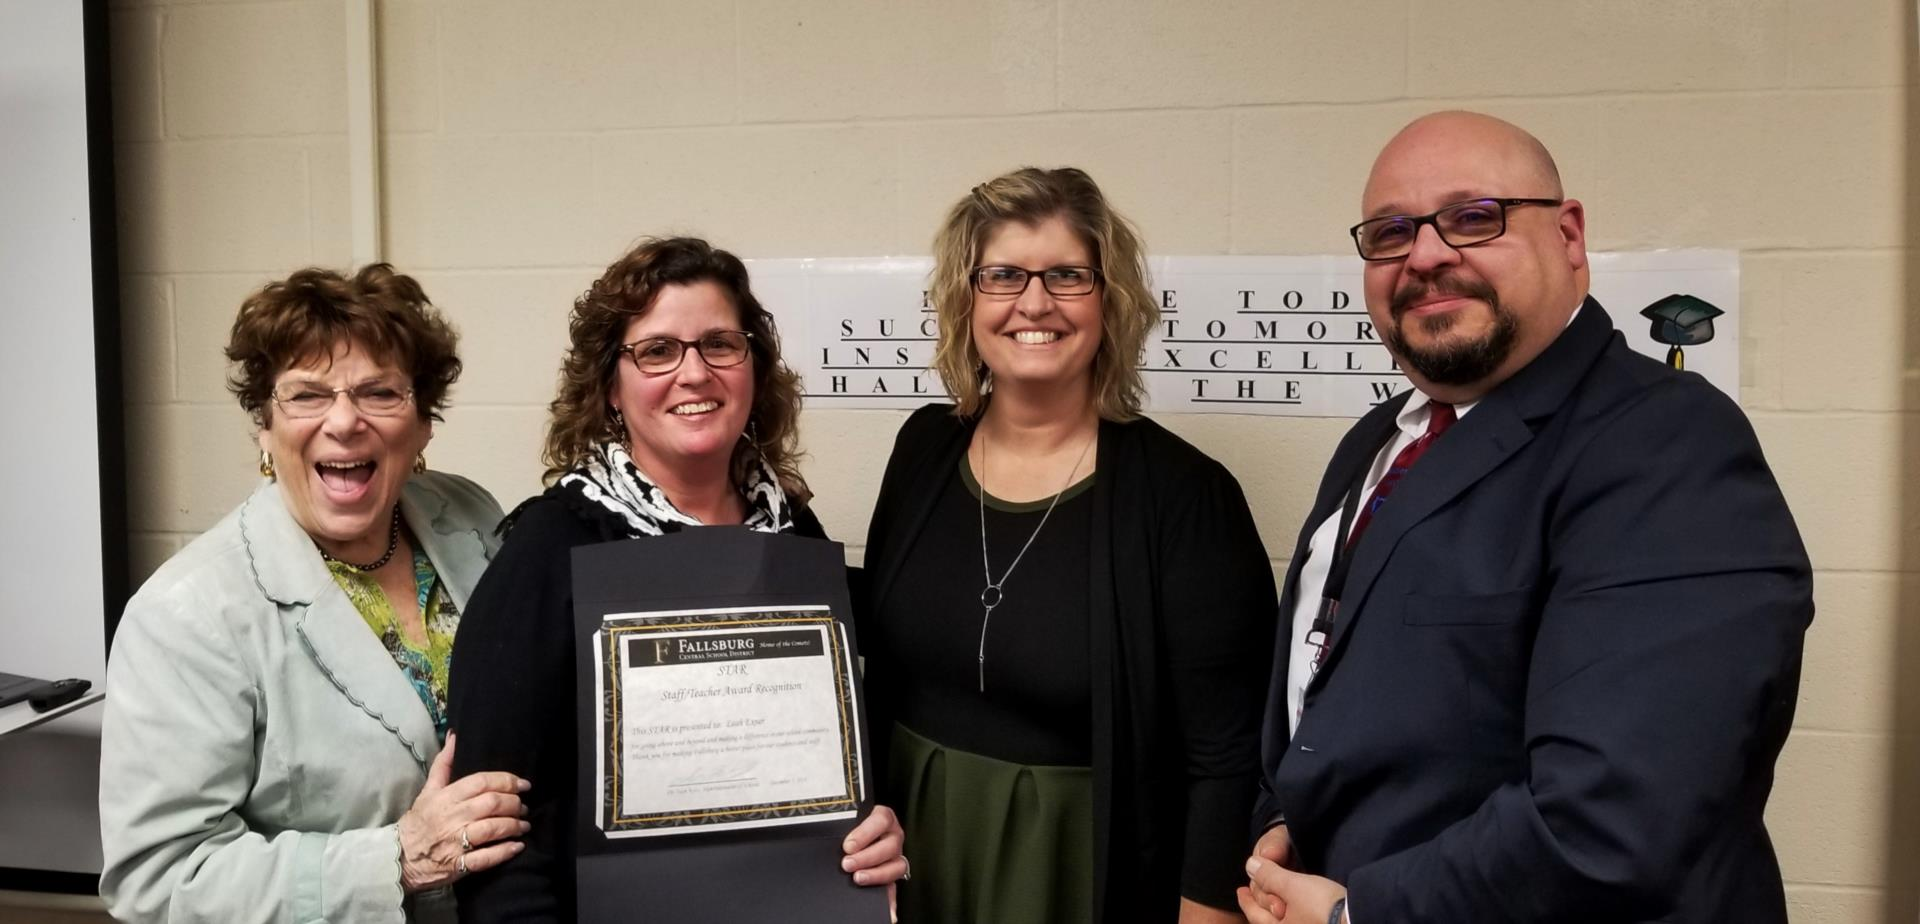 Ms. Exner Receives Star Award